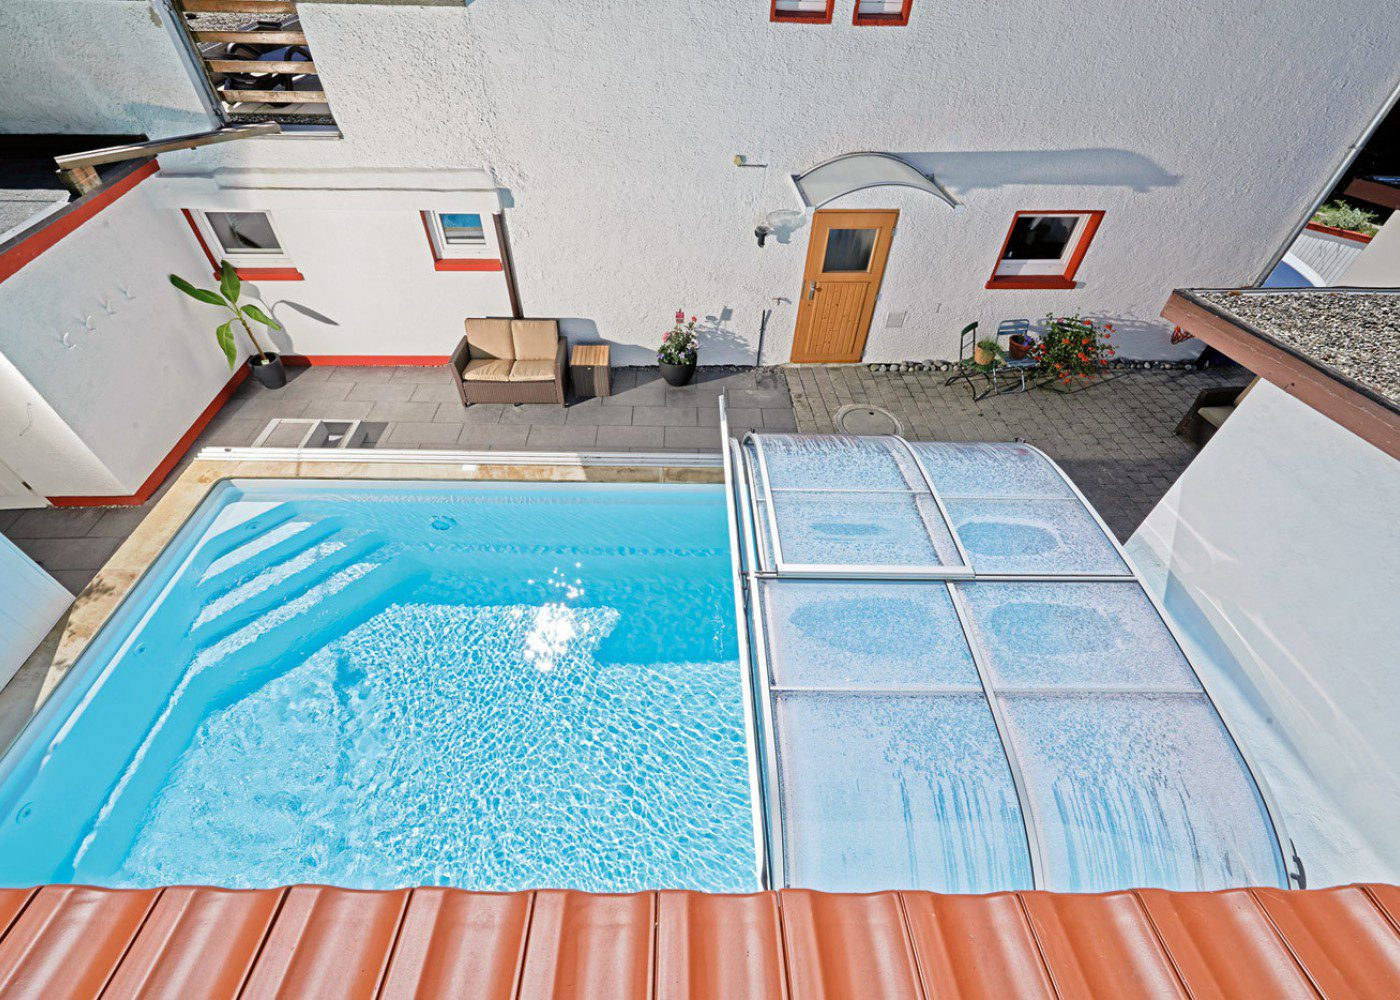 india 750r ceramic core pool with cover